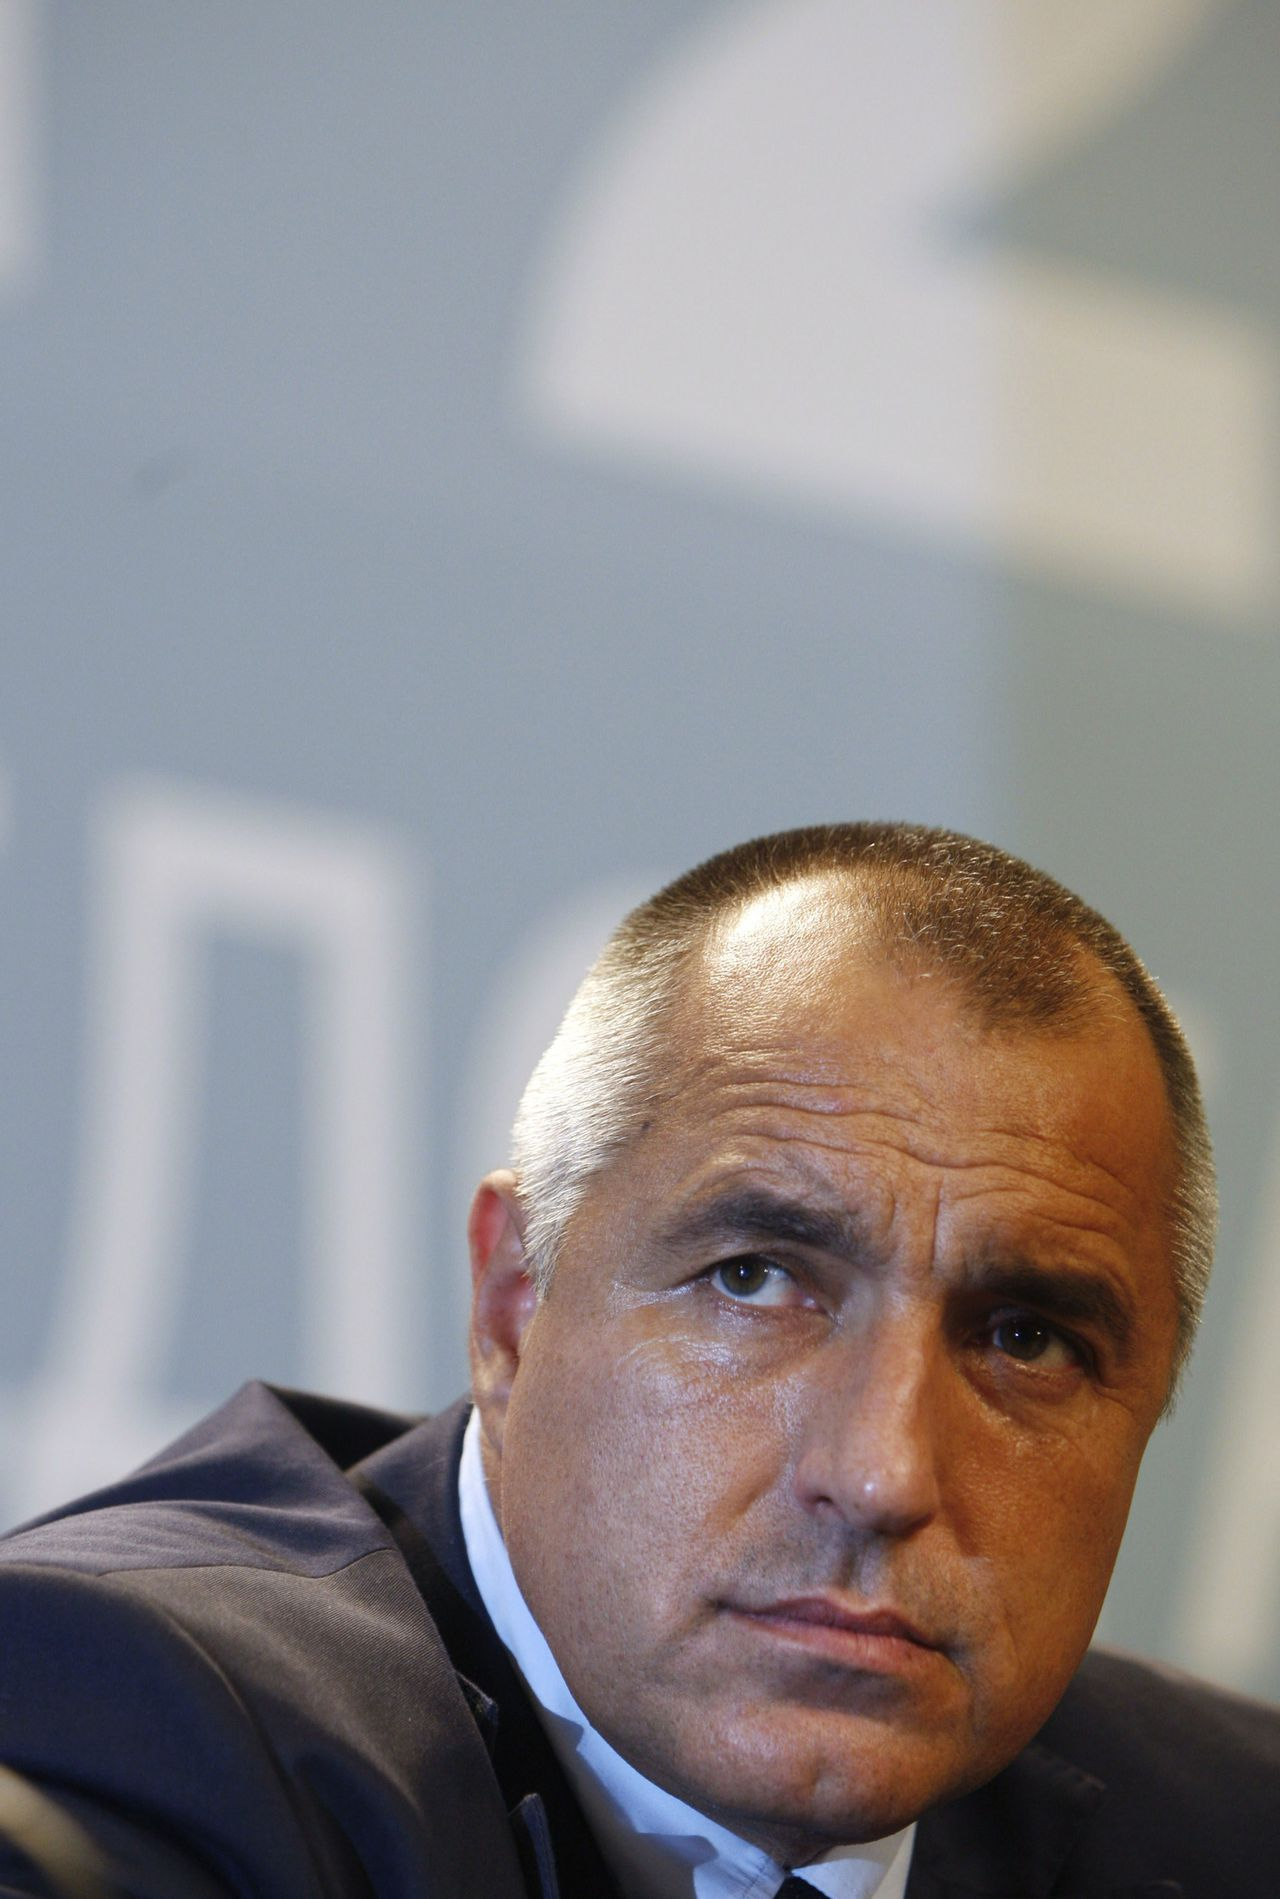 Boris Borisov (Foto Reuters) Bulgarian GERB party leader and Sofia's mayor Boiko Borisov attends a news conference in Sofia July 5, 2009. Exit polls showed Bulgaria's opposition party GERB defeating the ruling Socialists in Sunday's parliamentary election, raising hopes EU-mandated judiciary reforms will be restarted.Led by former bodyguard and now Sofia mayor Borisov, GERB received 115-117 seats in the 240-strong chamber compared with 39-42 seats for the ruling Socialists, exit polls by Sova Harris and Alpha Research showed. REUTERS/Oleg Popov (BULGARIA POLITICS ELECTIONS HEADSHOT)